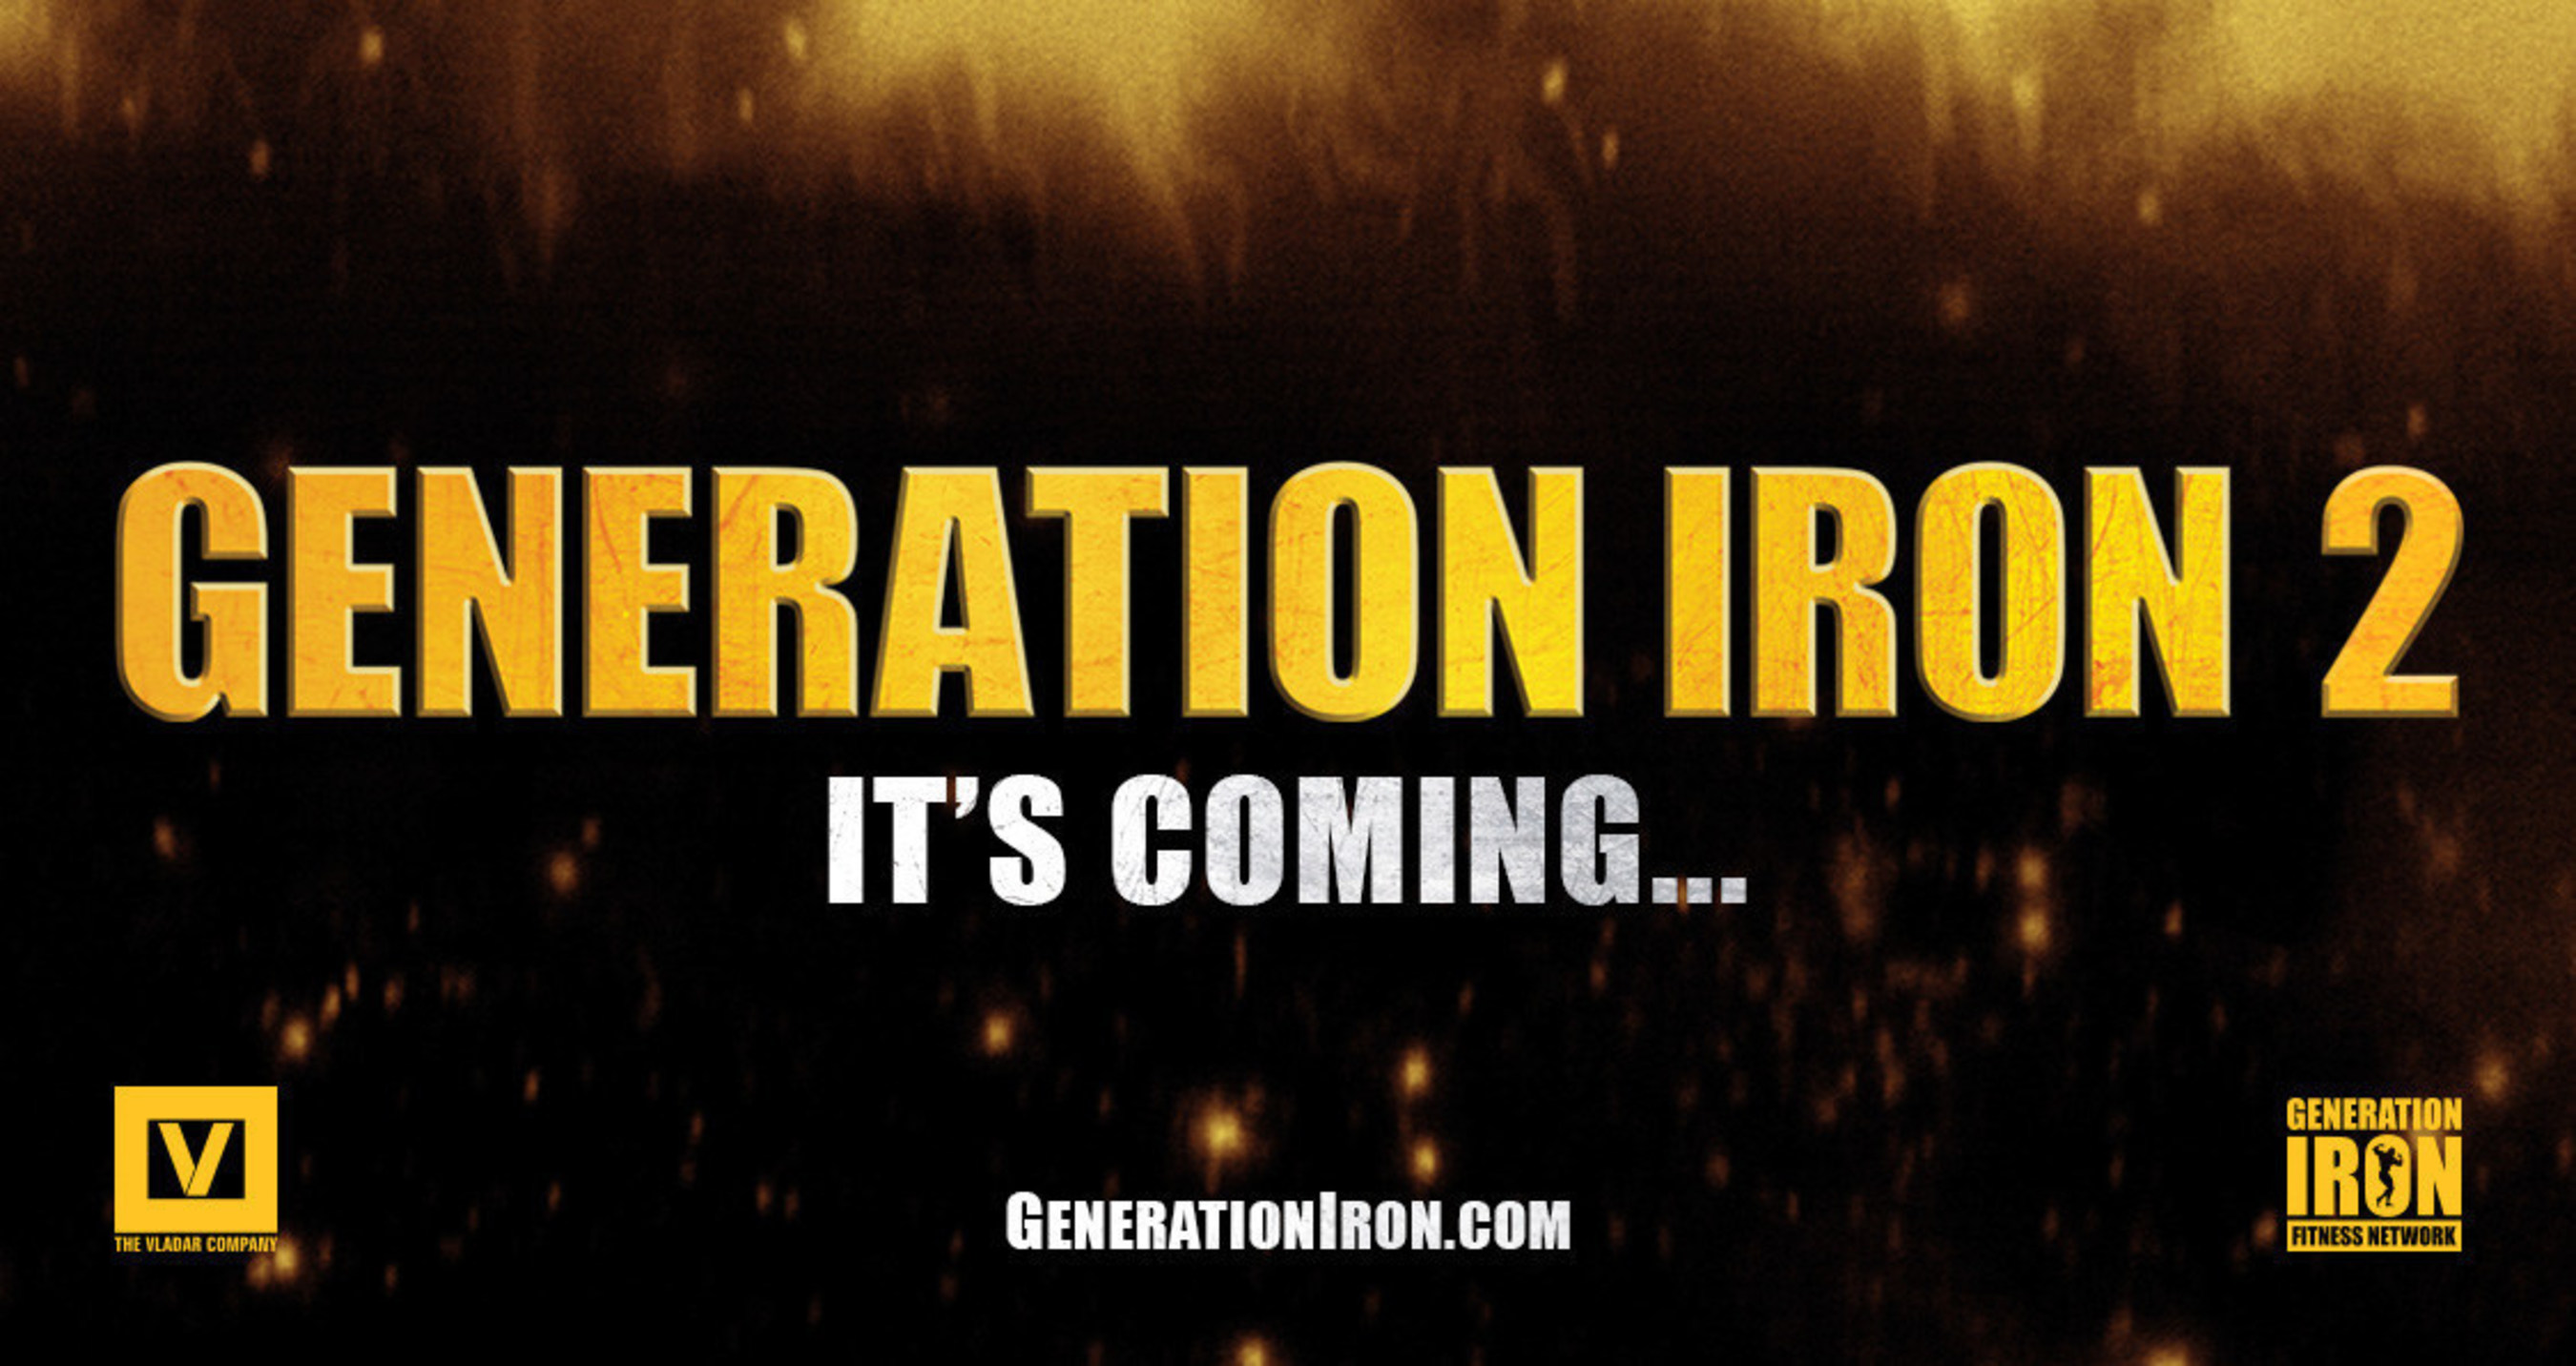 The Vladar Company and BodyPower announce Generation Iron 2